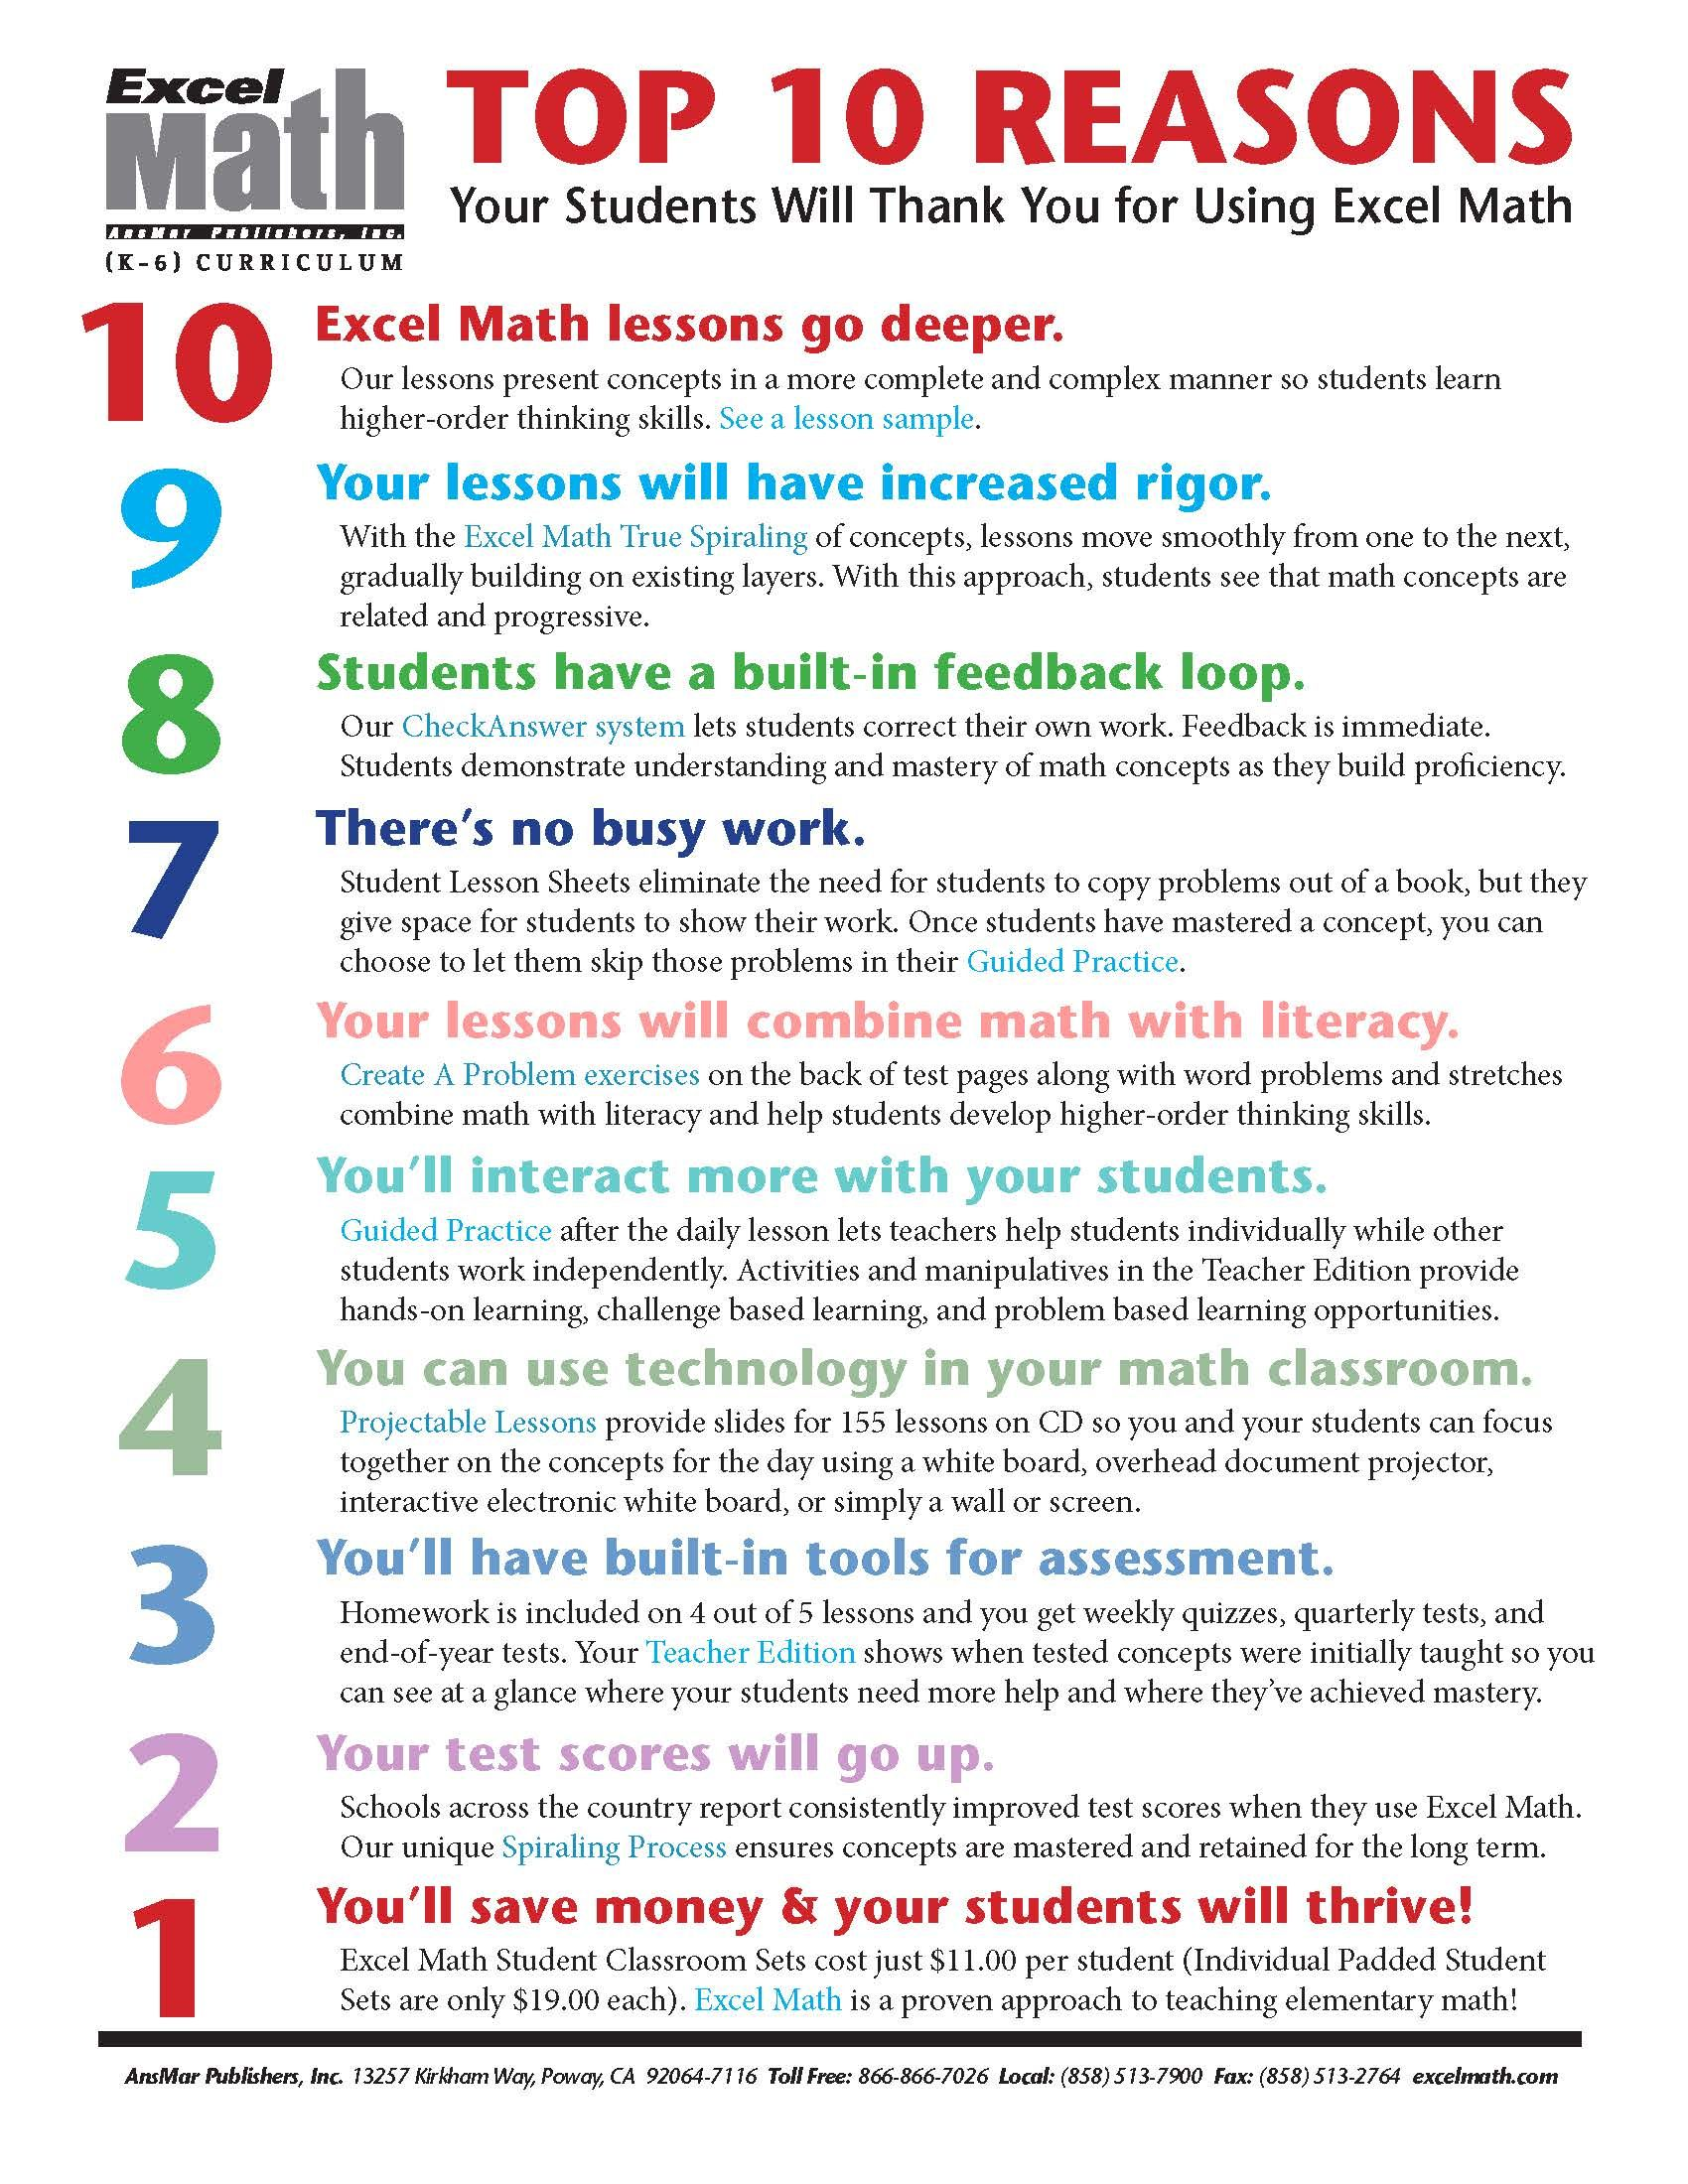 Top 10 Reasons Your Students Will Thank You For Using